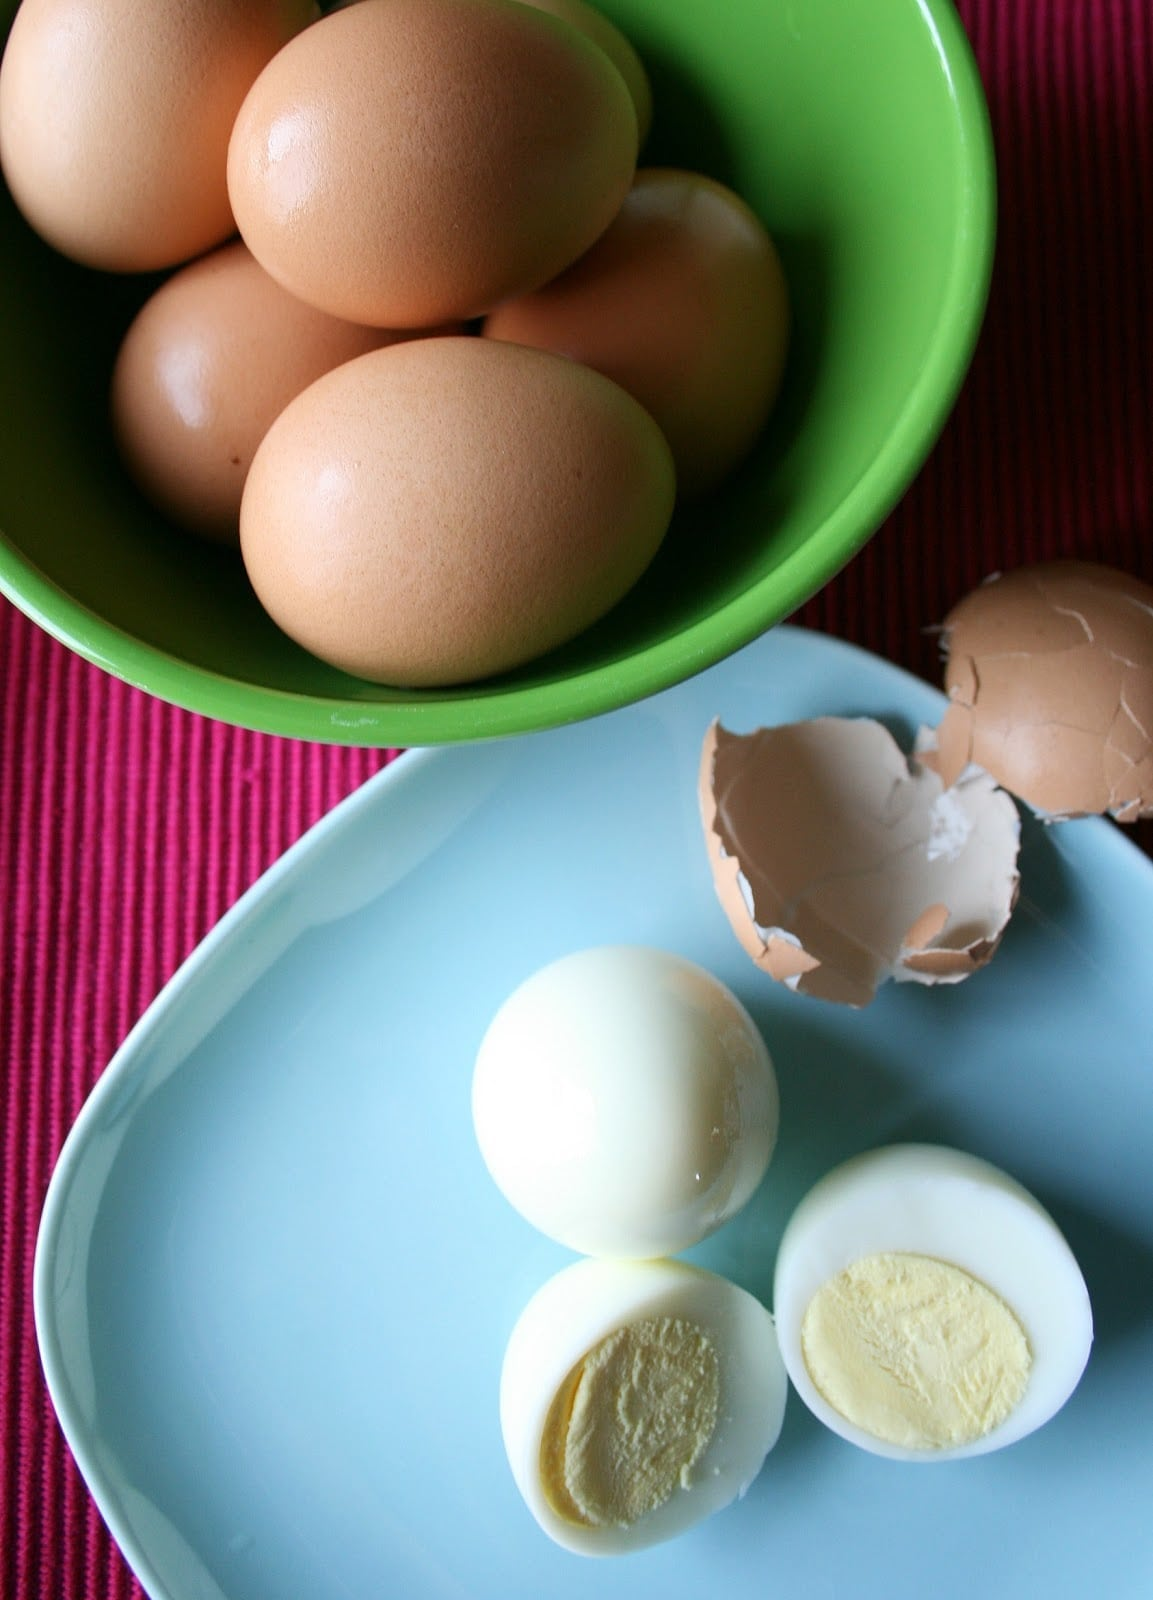 how to boil eggs for coloring - coloring eggs for easter 1 ... - photo#23